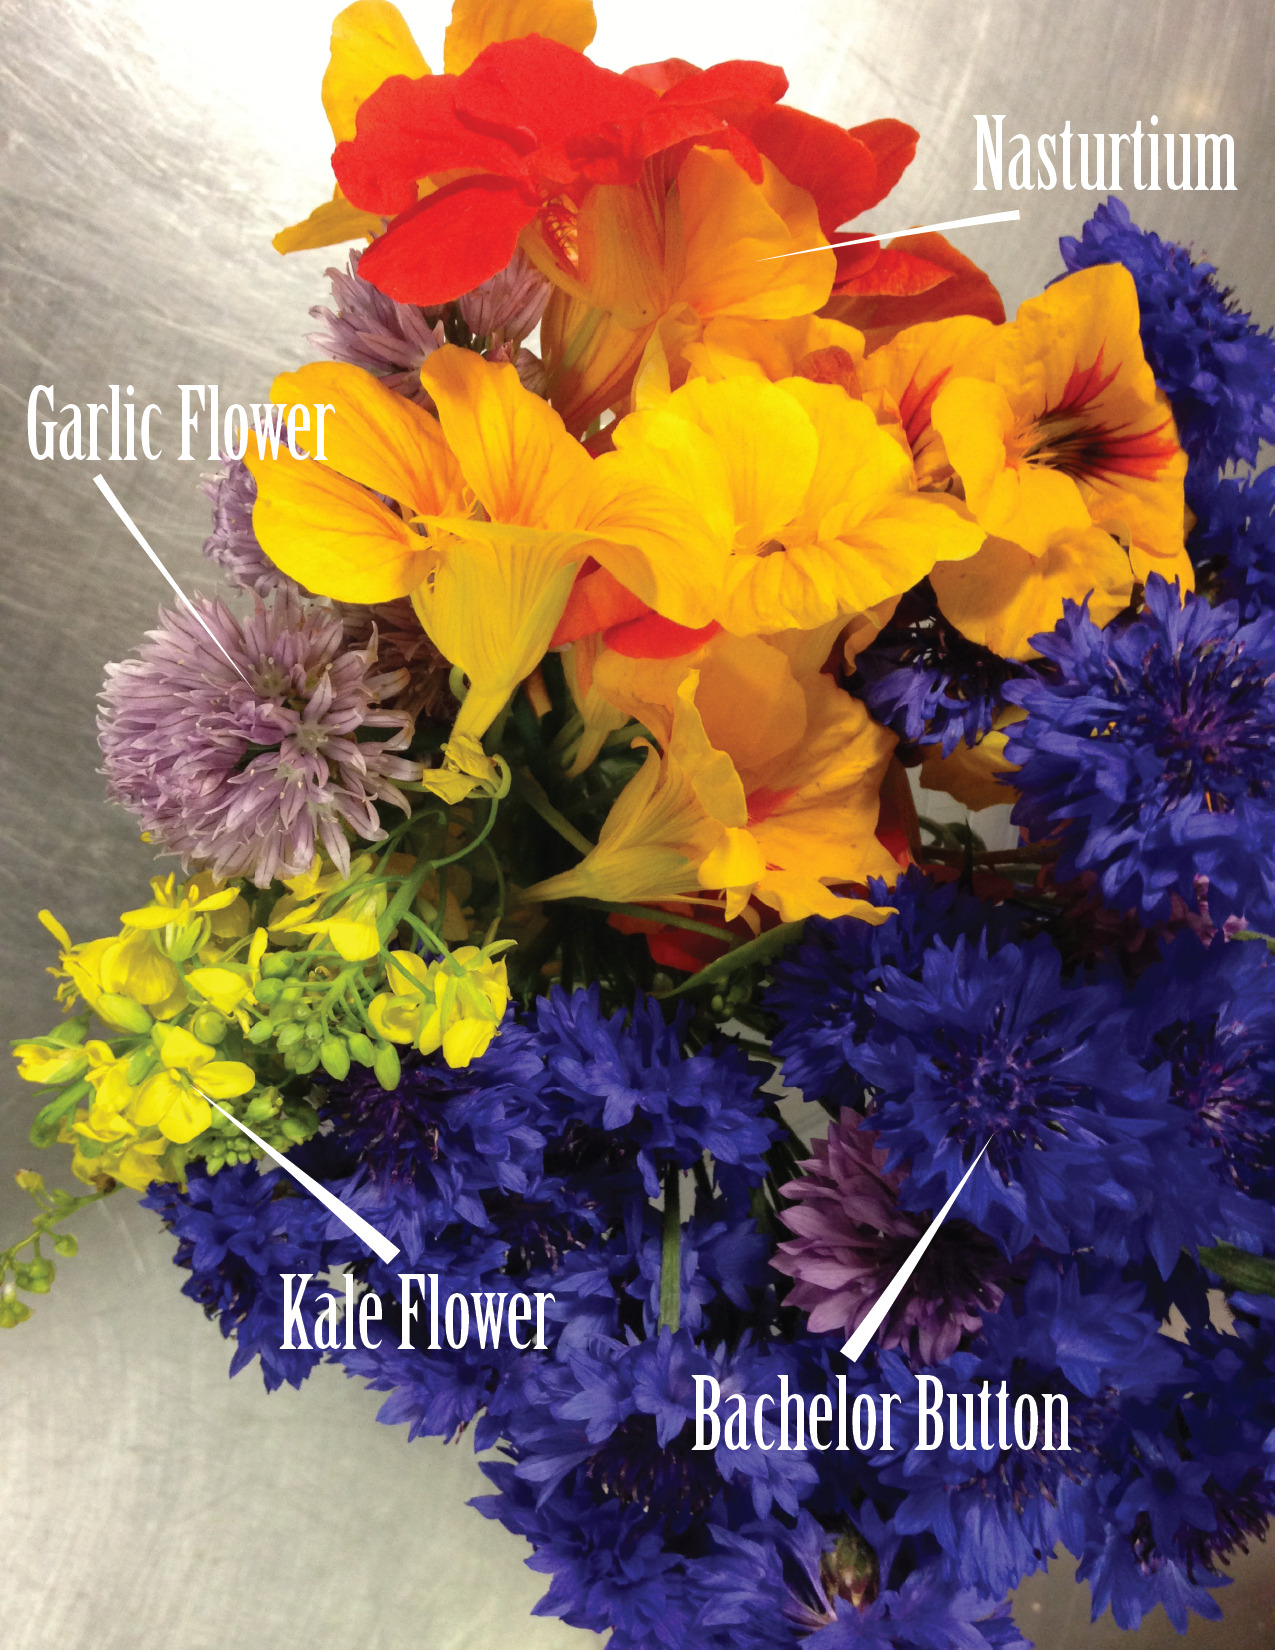 Know Your Edible Flowers!      Edible flowers can add a pop of color and a whimsical touch to any plate, both sweet and savory. Some of these flowers have great flavor of their own. Garlic and Chive Flowers offer a more concentrated flavor of the more commonly eaten parts of the plant. And Nasturtiums boast a delightful peppery taste in both the blooms and the leaves. Other flowers, such as kale flowers and bachelor buttons, simply taste botanical and fresh. Whether topping a salad or decorating a dessert, we love edible flowers at The National!